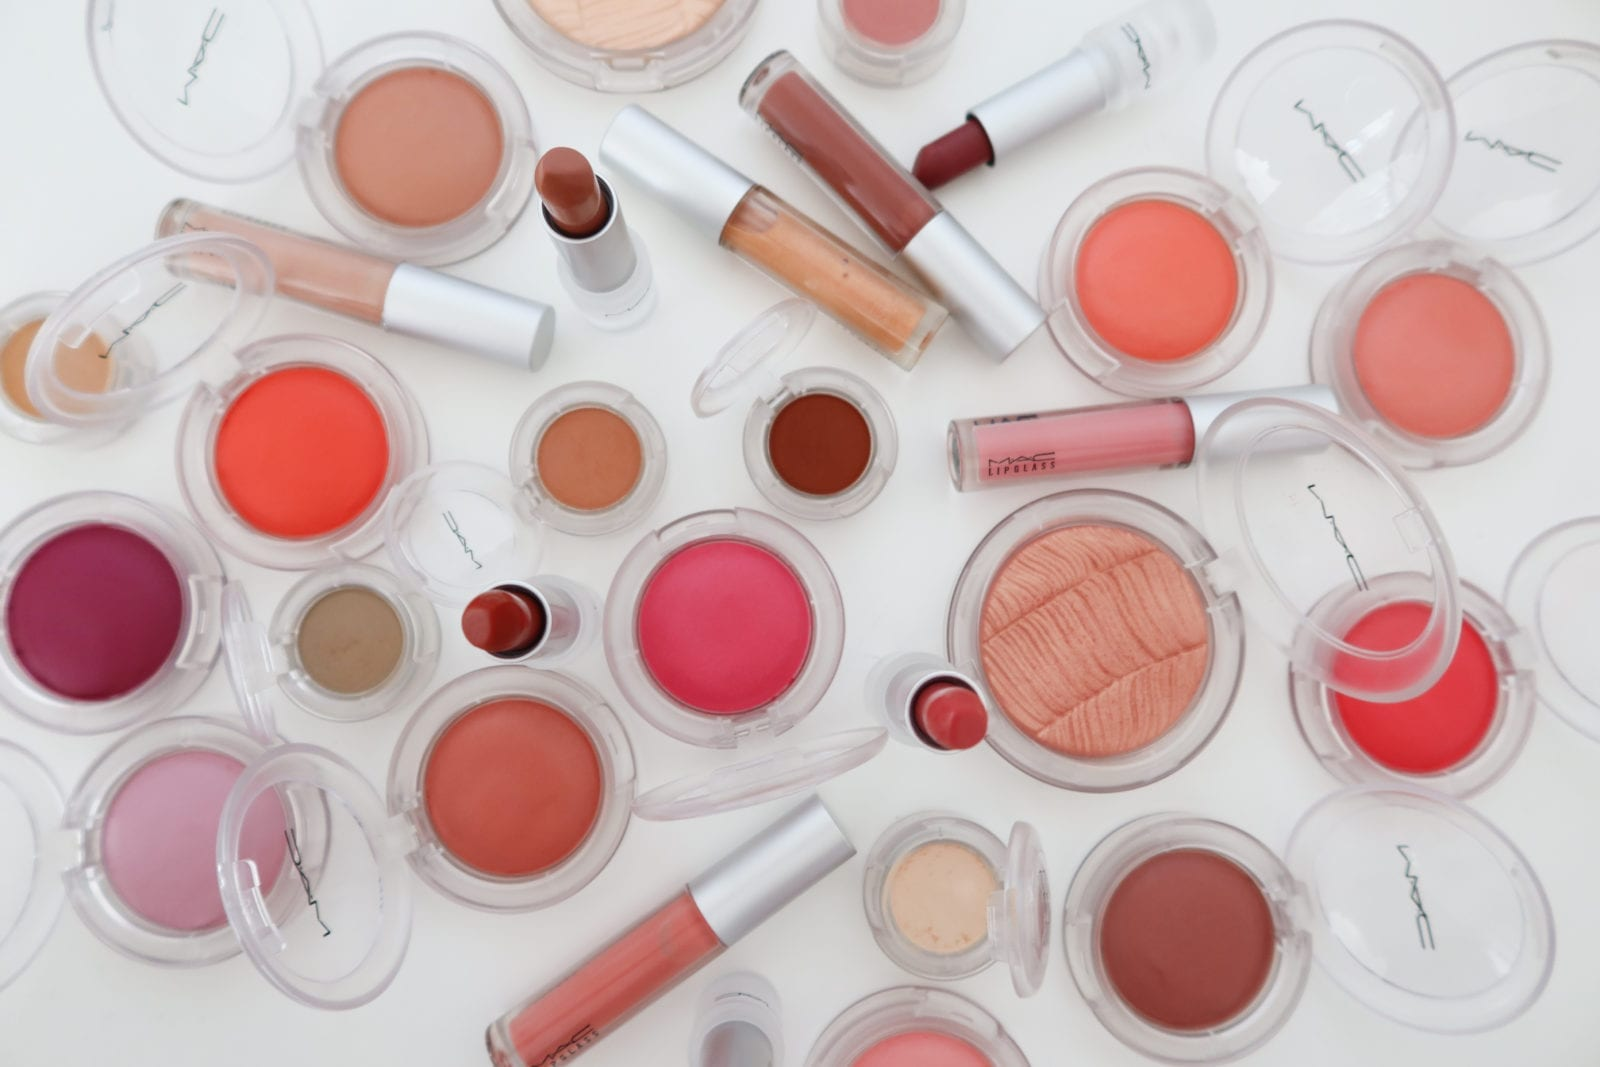 This is a flat lay of the new MAC Cosmetics Loud and Clear Collection, along with the Glow Play Blush.